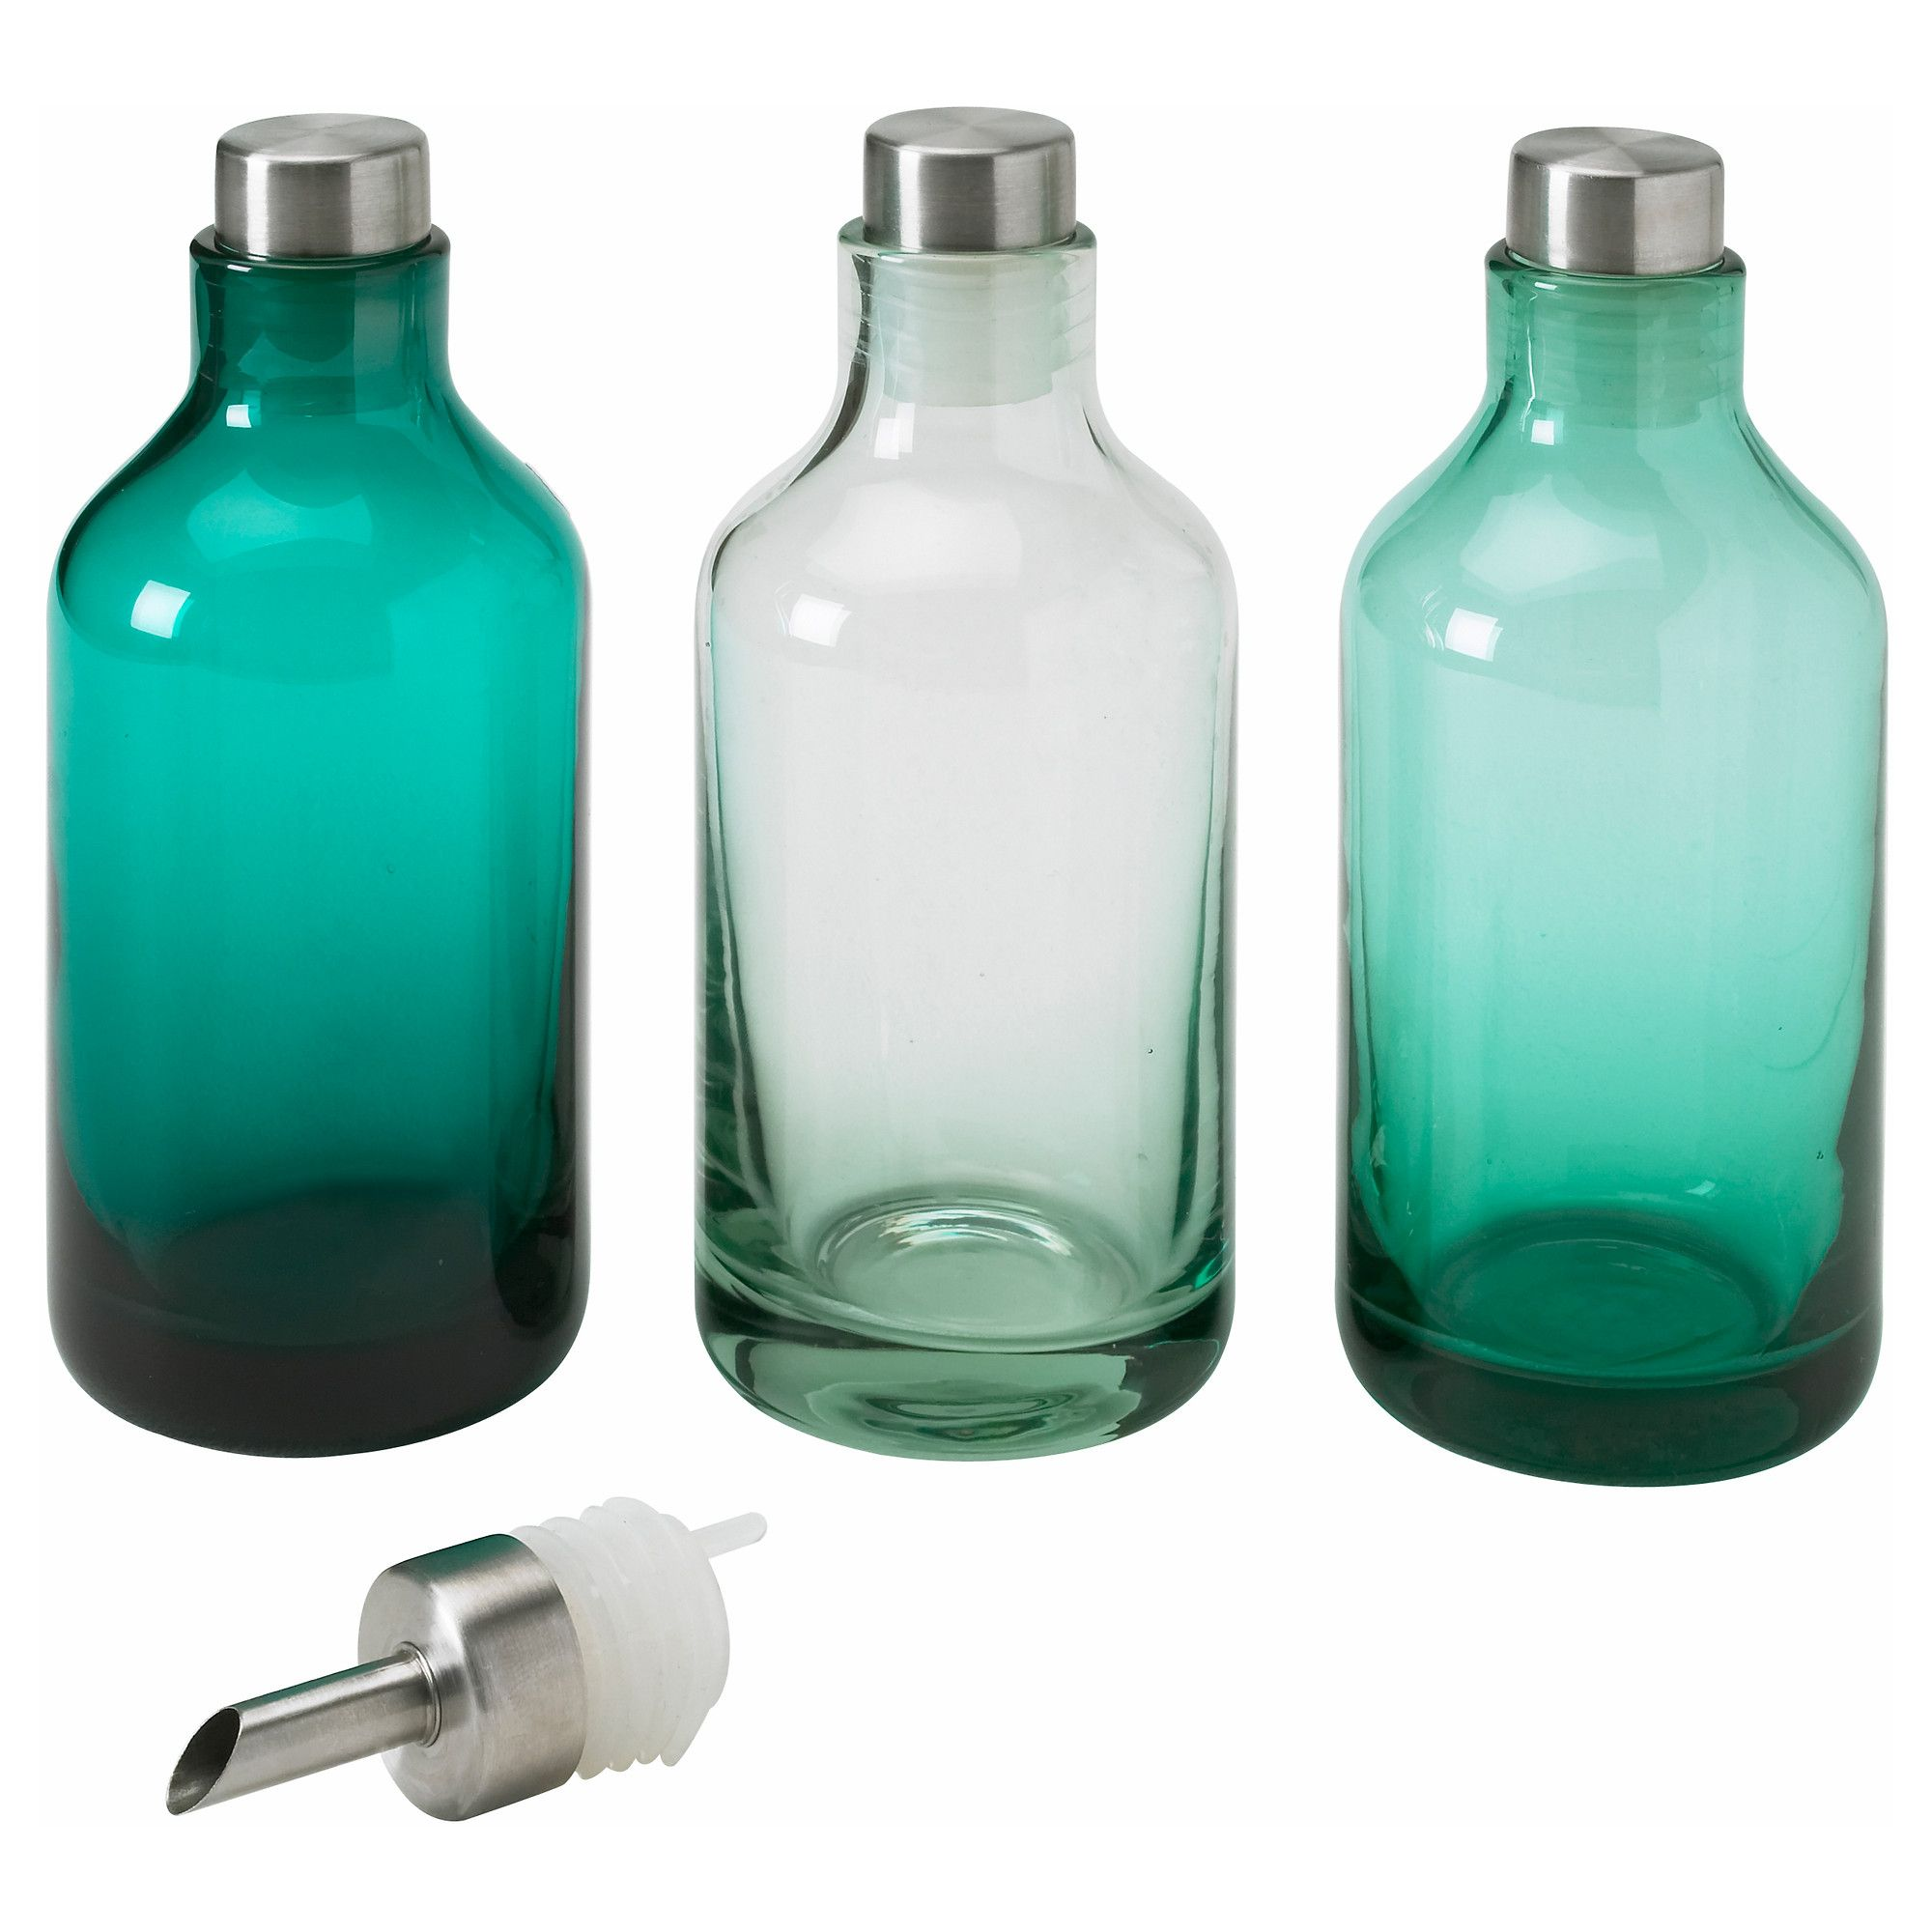 Decorative Plastic Bottles For Shampoo Limmaren Bottle  Ikeaa Classy Way To Dispense Liquid Soap